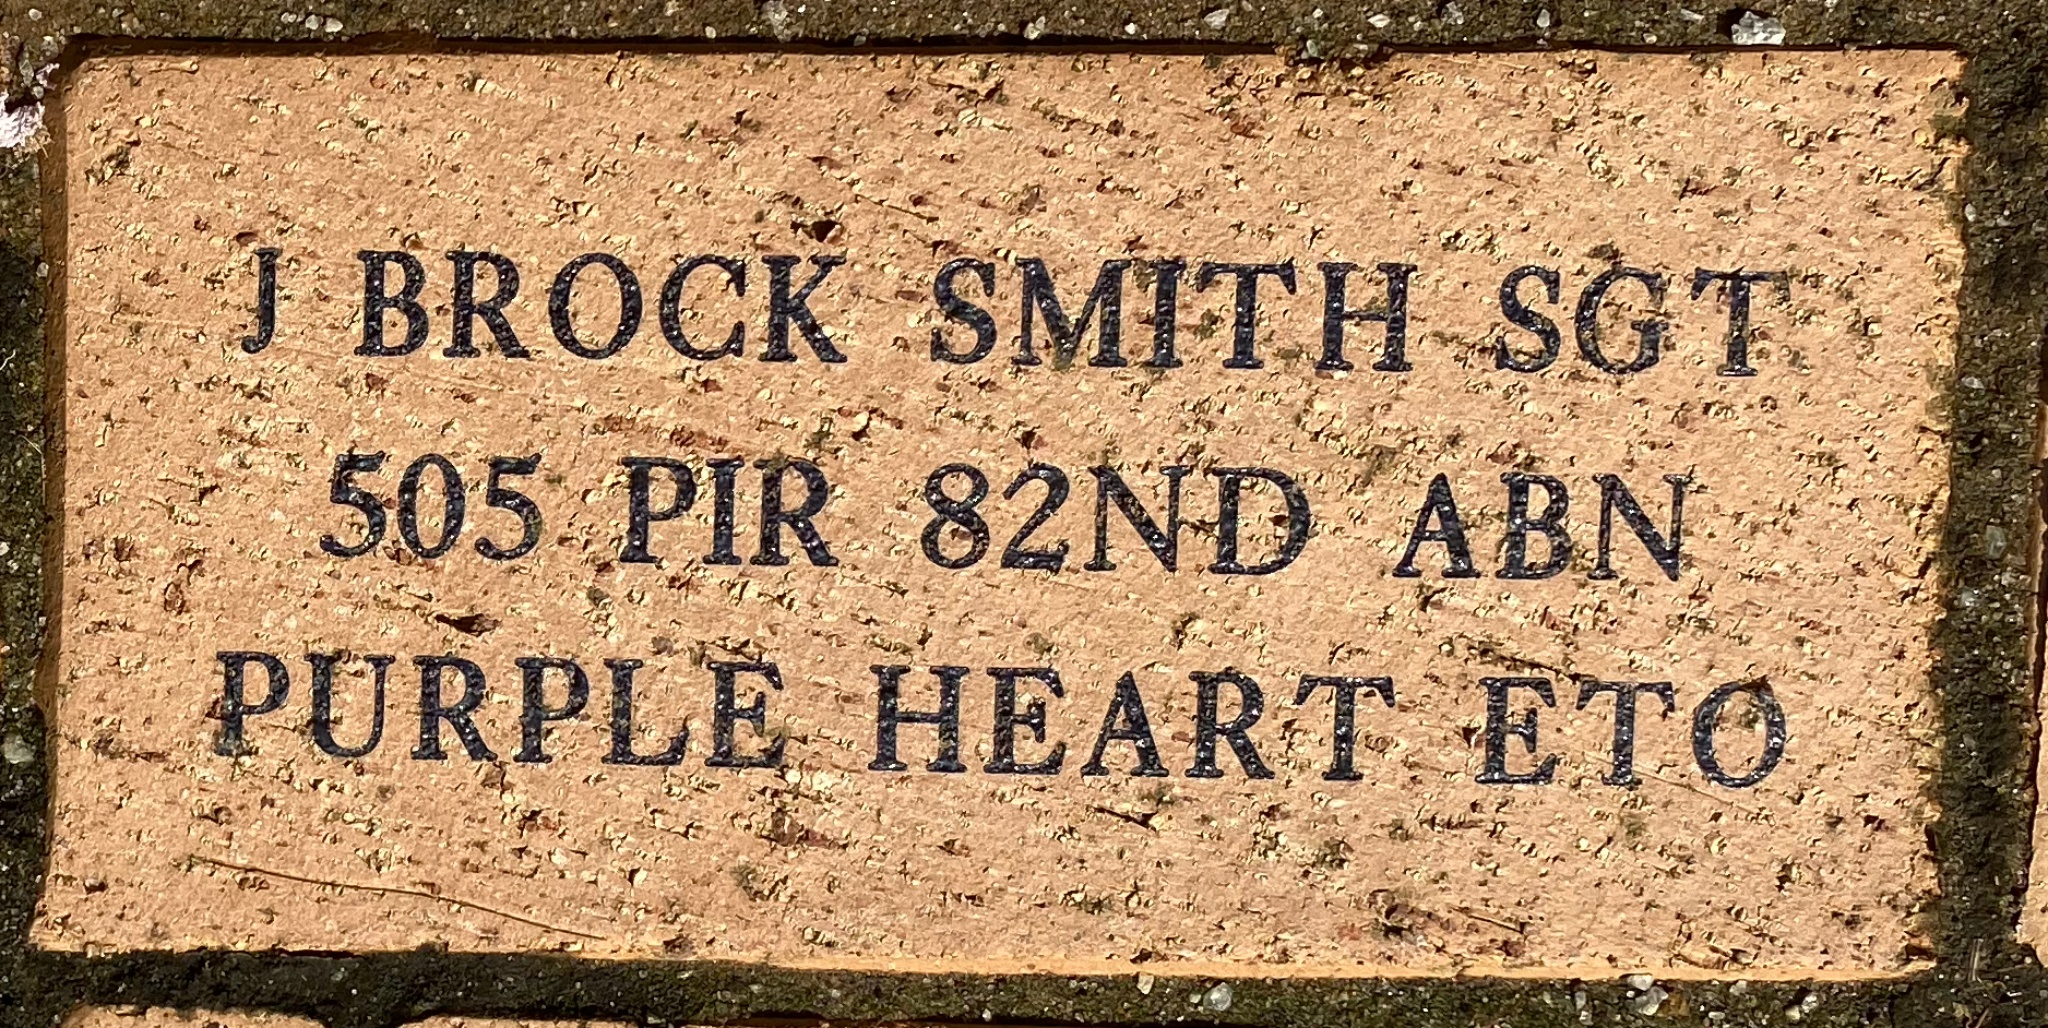 J BROCK SMITH SGT 505 PIR 82ND ABN PRUPLE HEART ETO